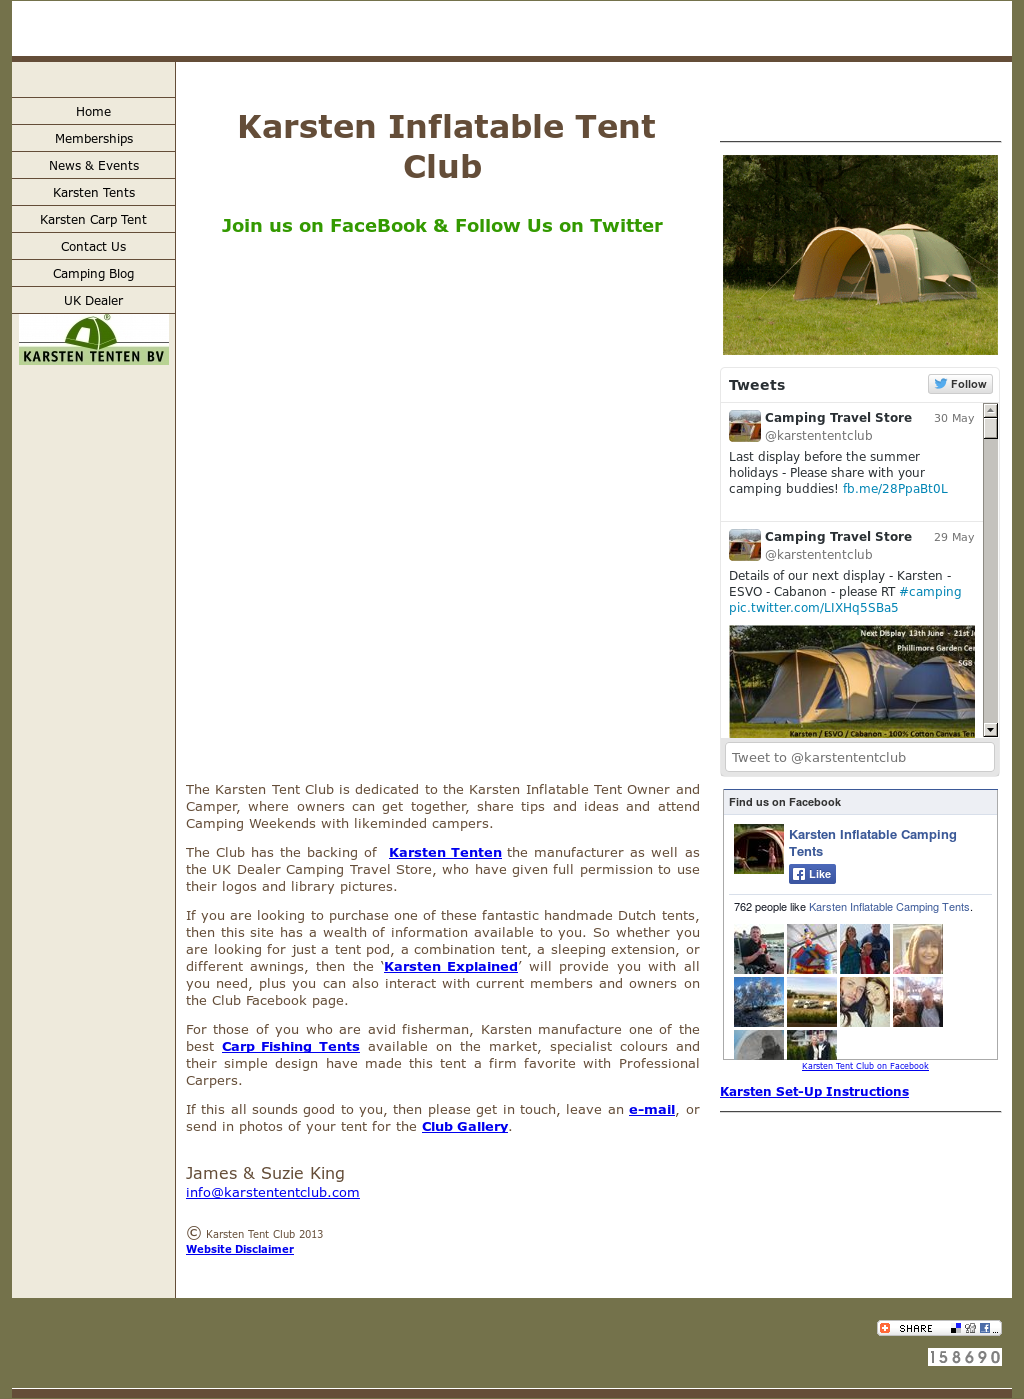 Karsten Inflatable Camping Tents Competitors, Revenue and Employees